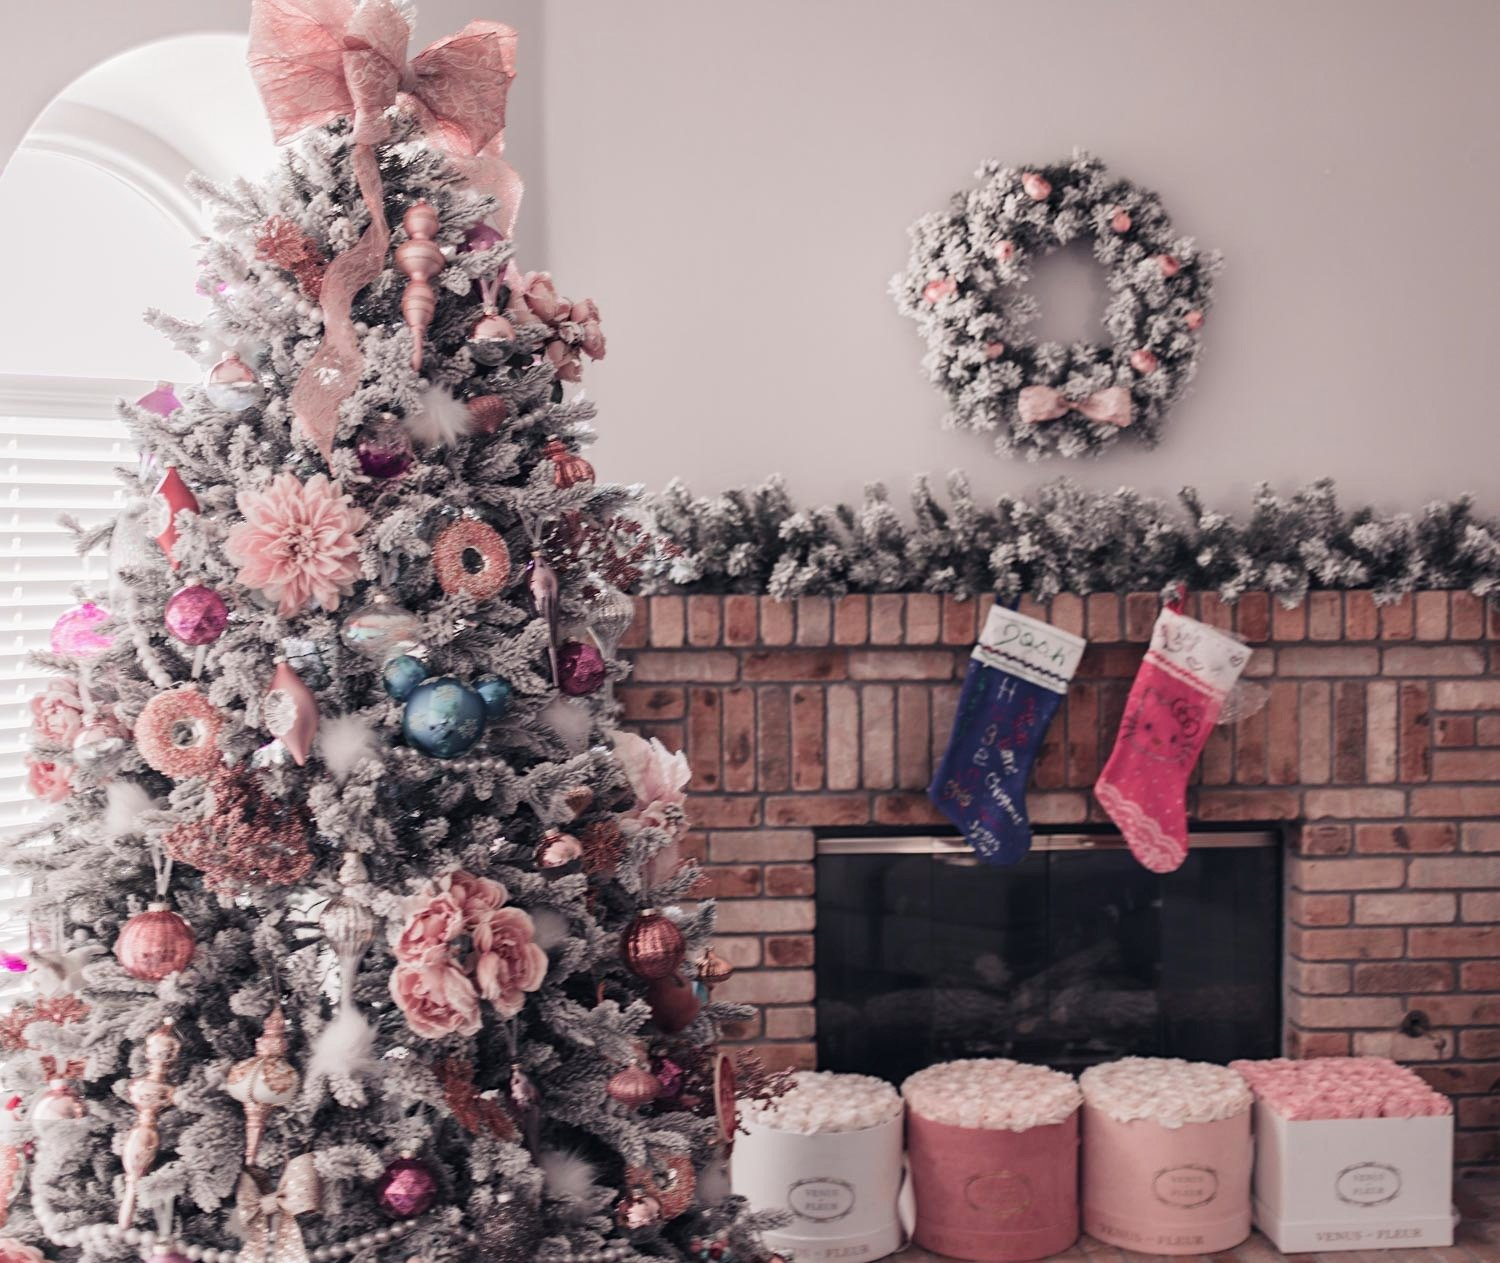 Fashion Blogger Elizabeth Hugen shares her feminine Christmas decor in a pink holiday home tour including a pink christmas tree